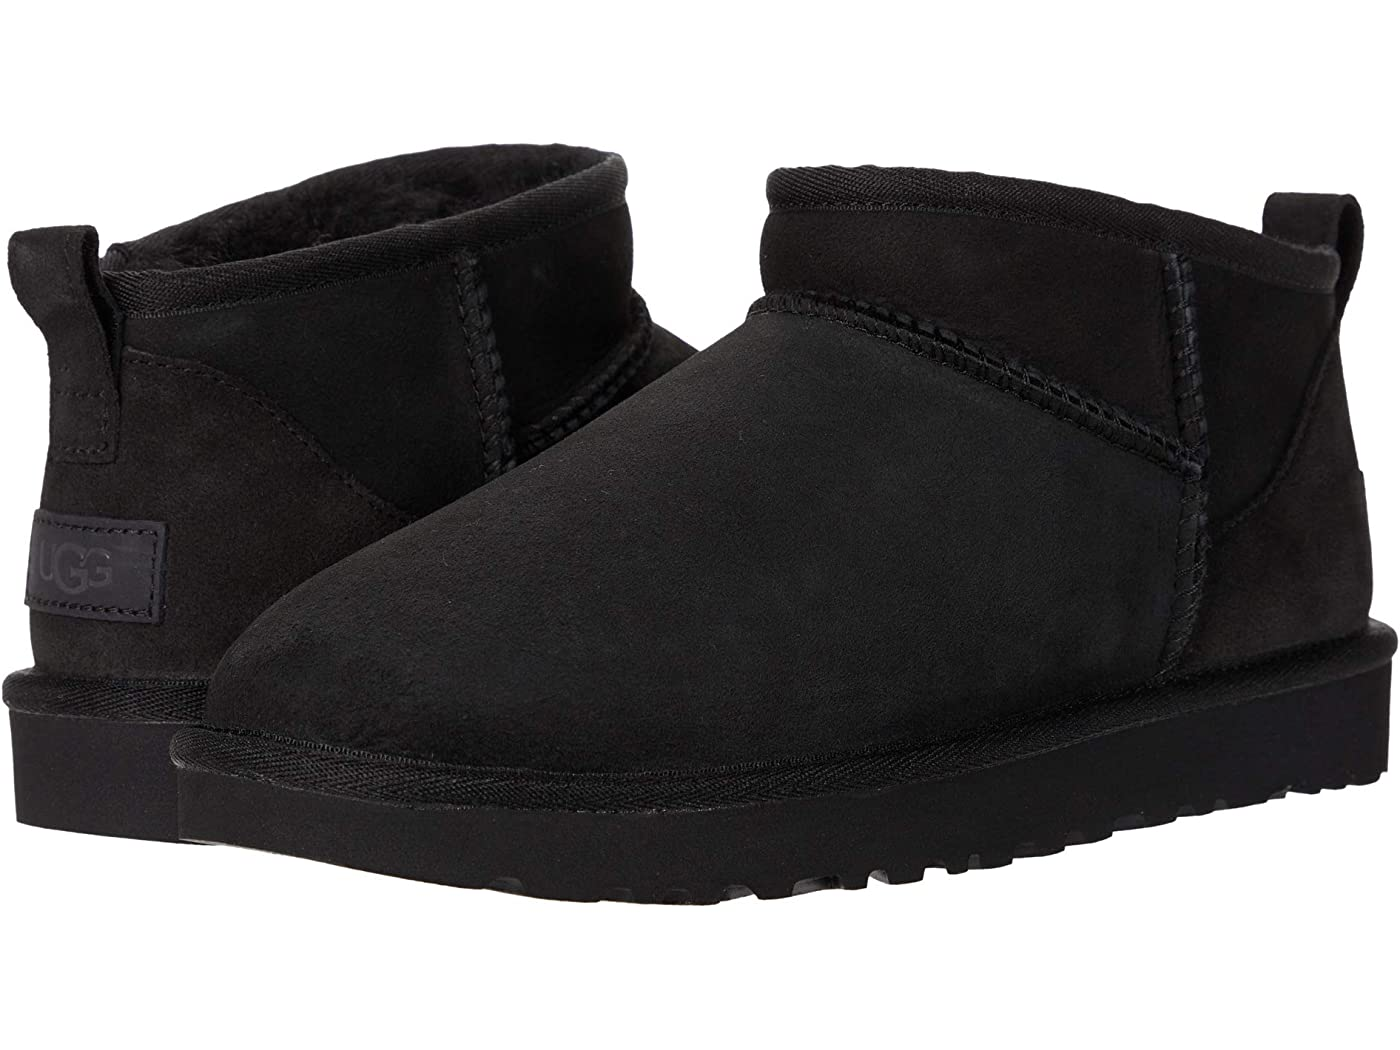 Classic Ultra Mini by Ugg, available on zappos.com for $139.95 Kaia Gerber Shoes Exact Product